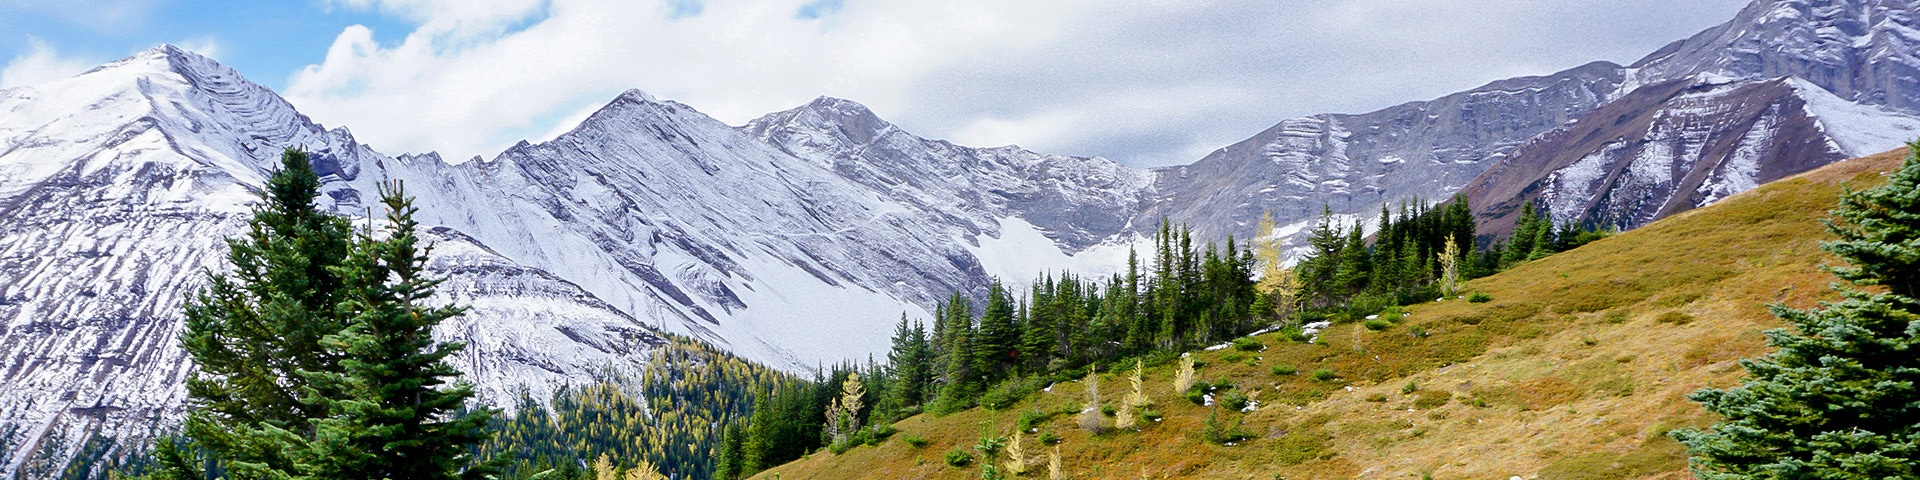 Scenery from the Ptarmigan Cirque hike in Kananaskis, the Canadian Rockies